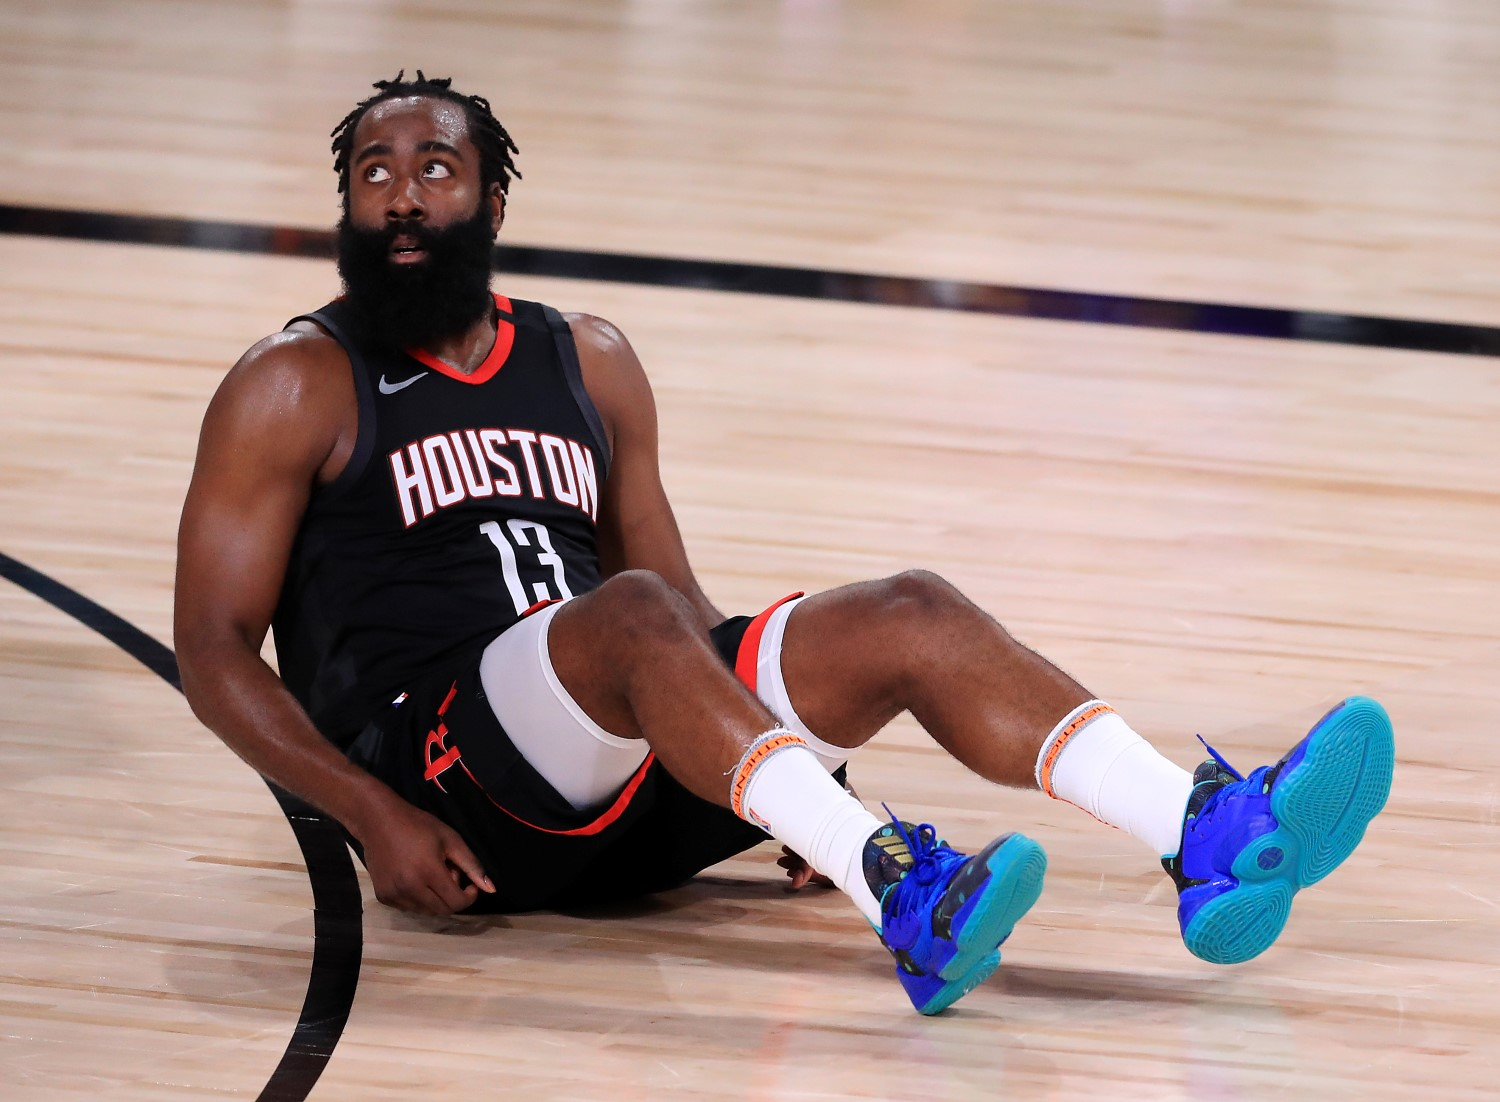 James Harden has been in the headlines for all the wrong reasons after requesting a trade. Could his actions be sabotaging his trade value?